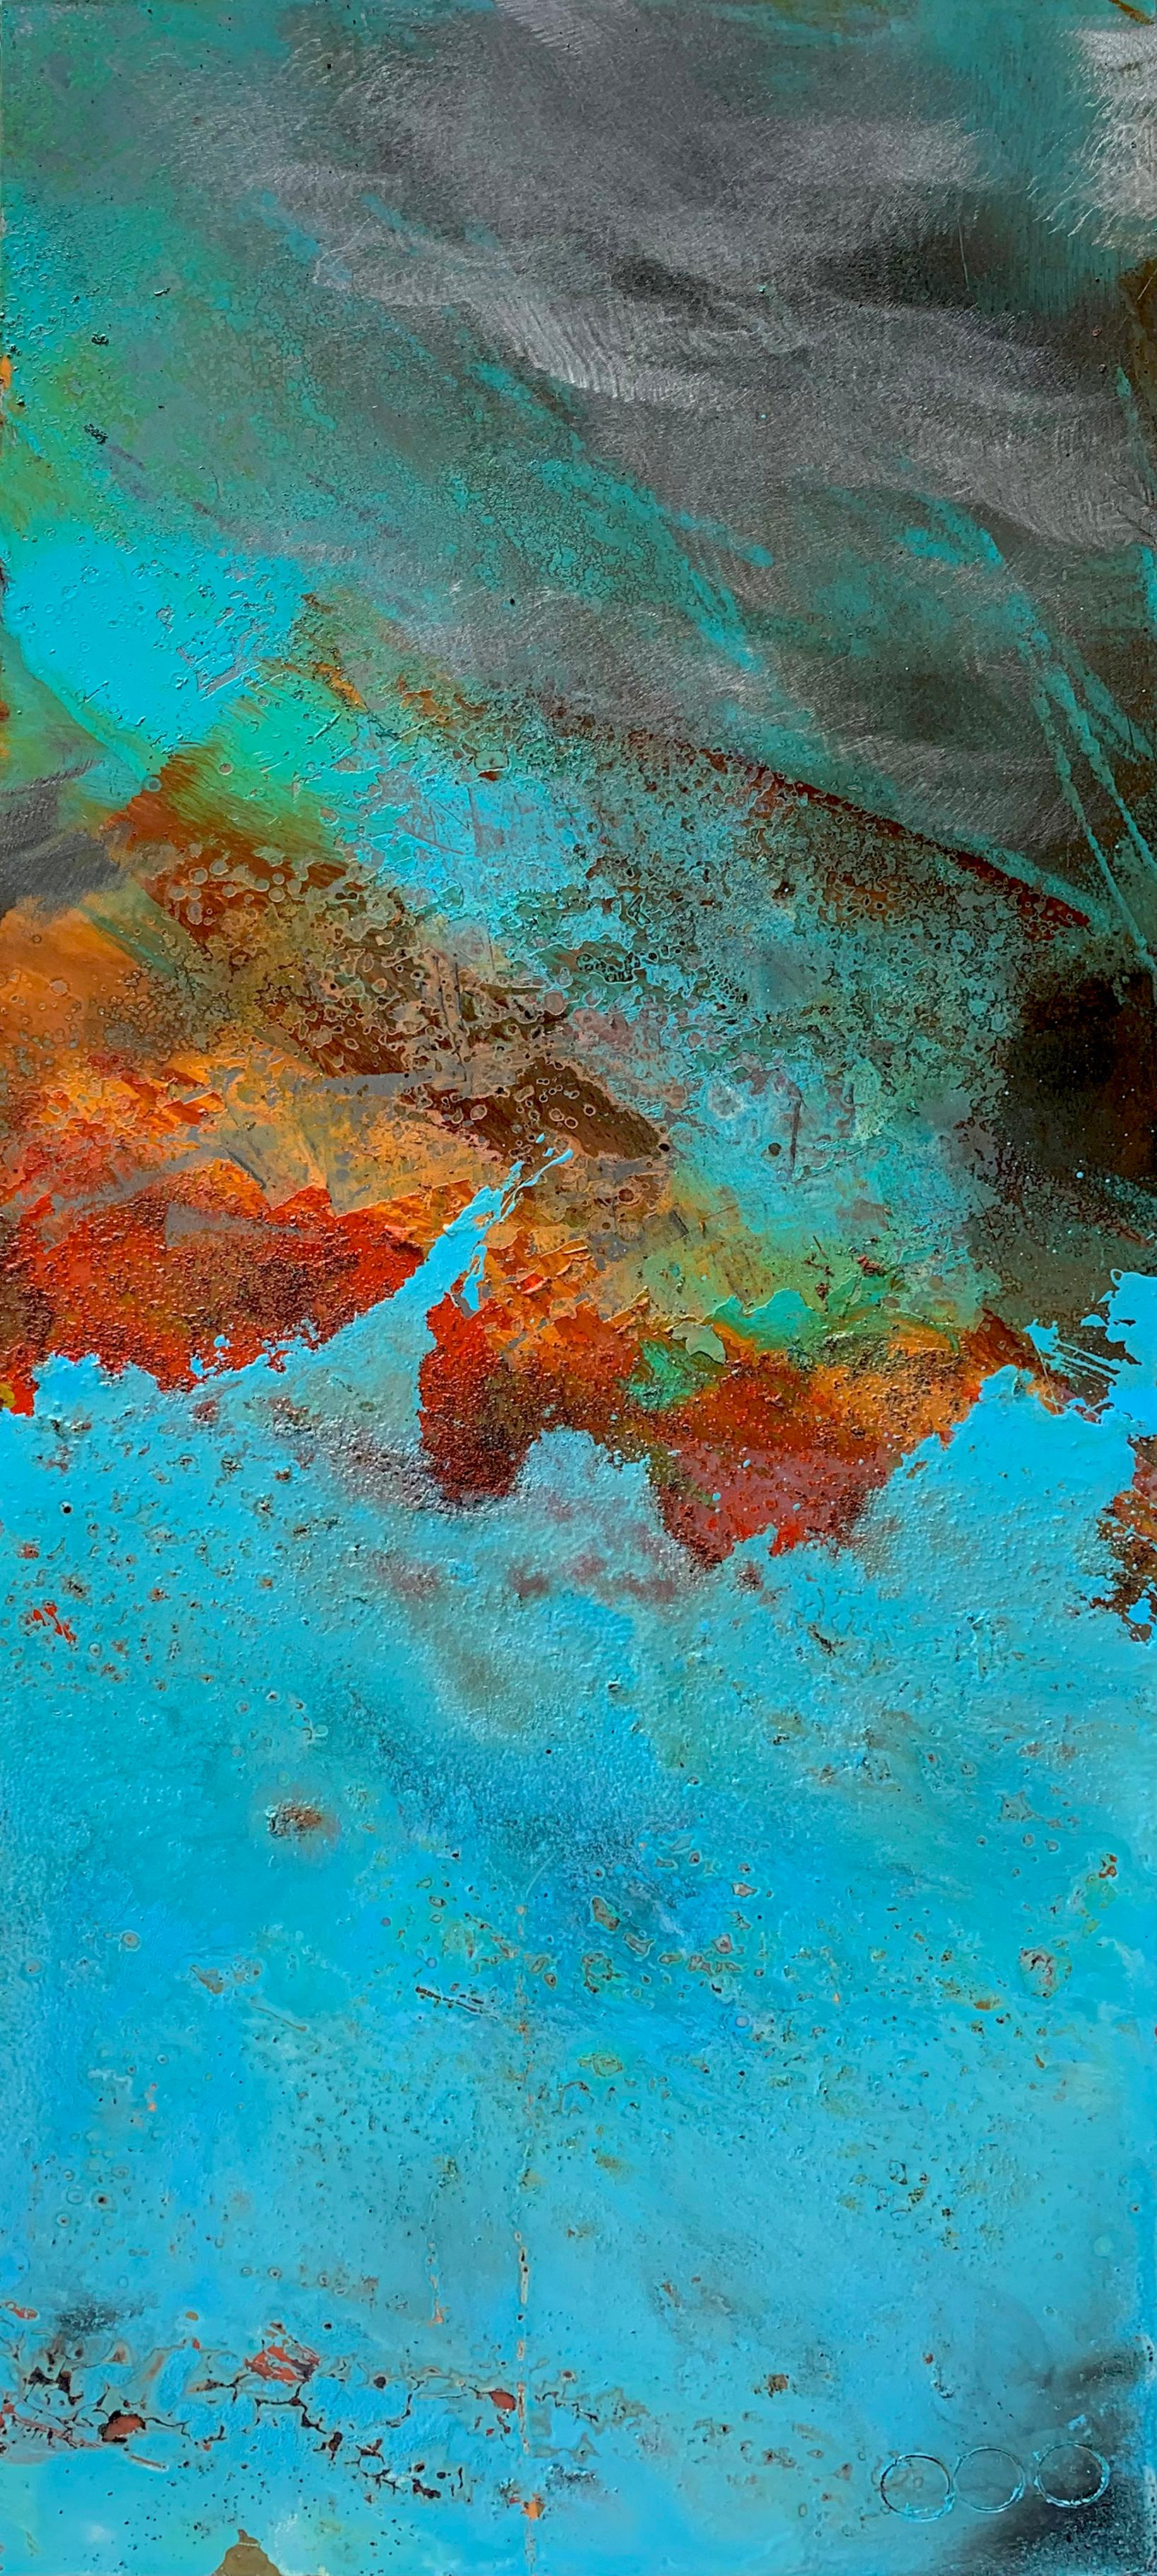 VIctoria by Sam Peacock Contemporary Oil on steel, abstract landscape painting